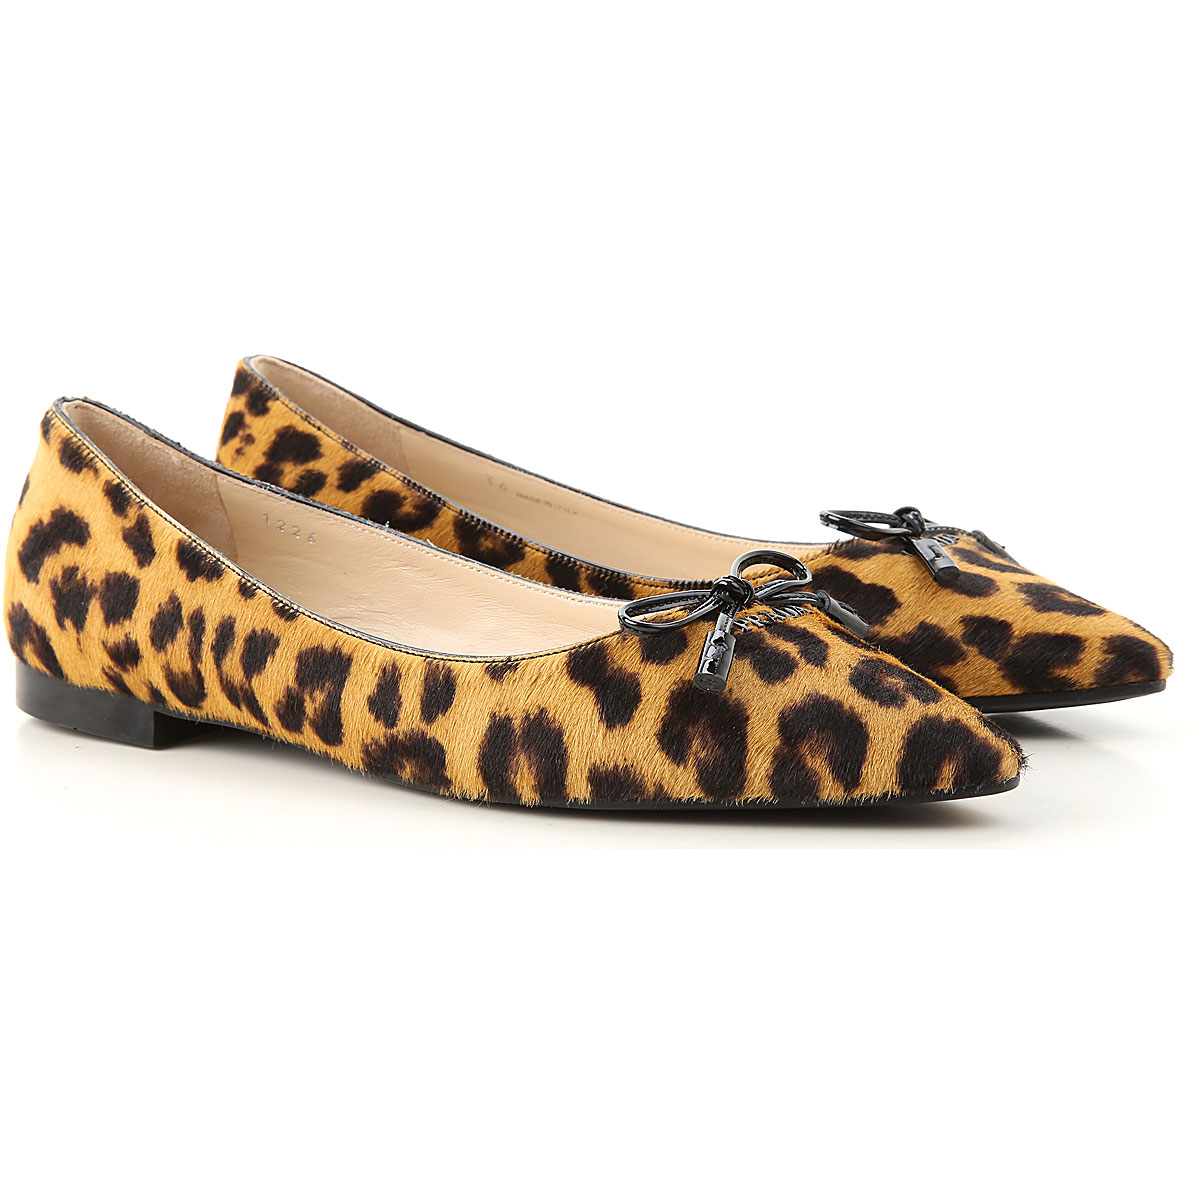 Prada Ballet Flats Ballerina Shoes for Women On Sale, Leopard, Leather, 2019, 5.5 6 6.5 7 9